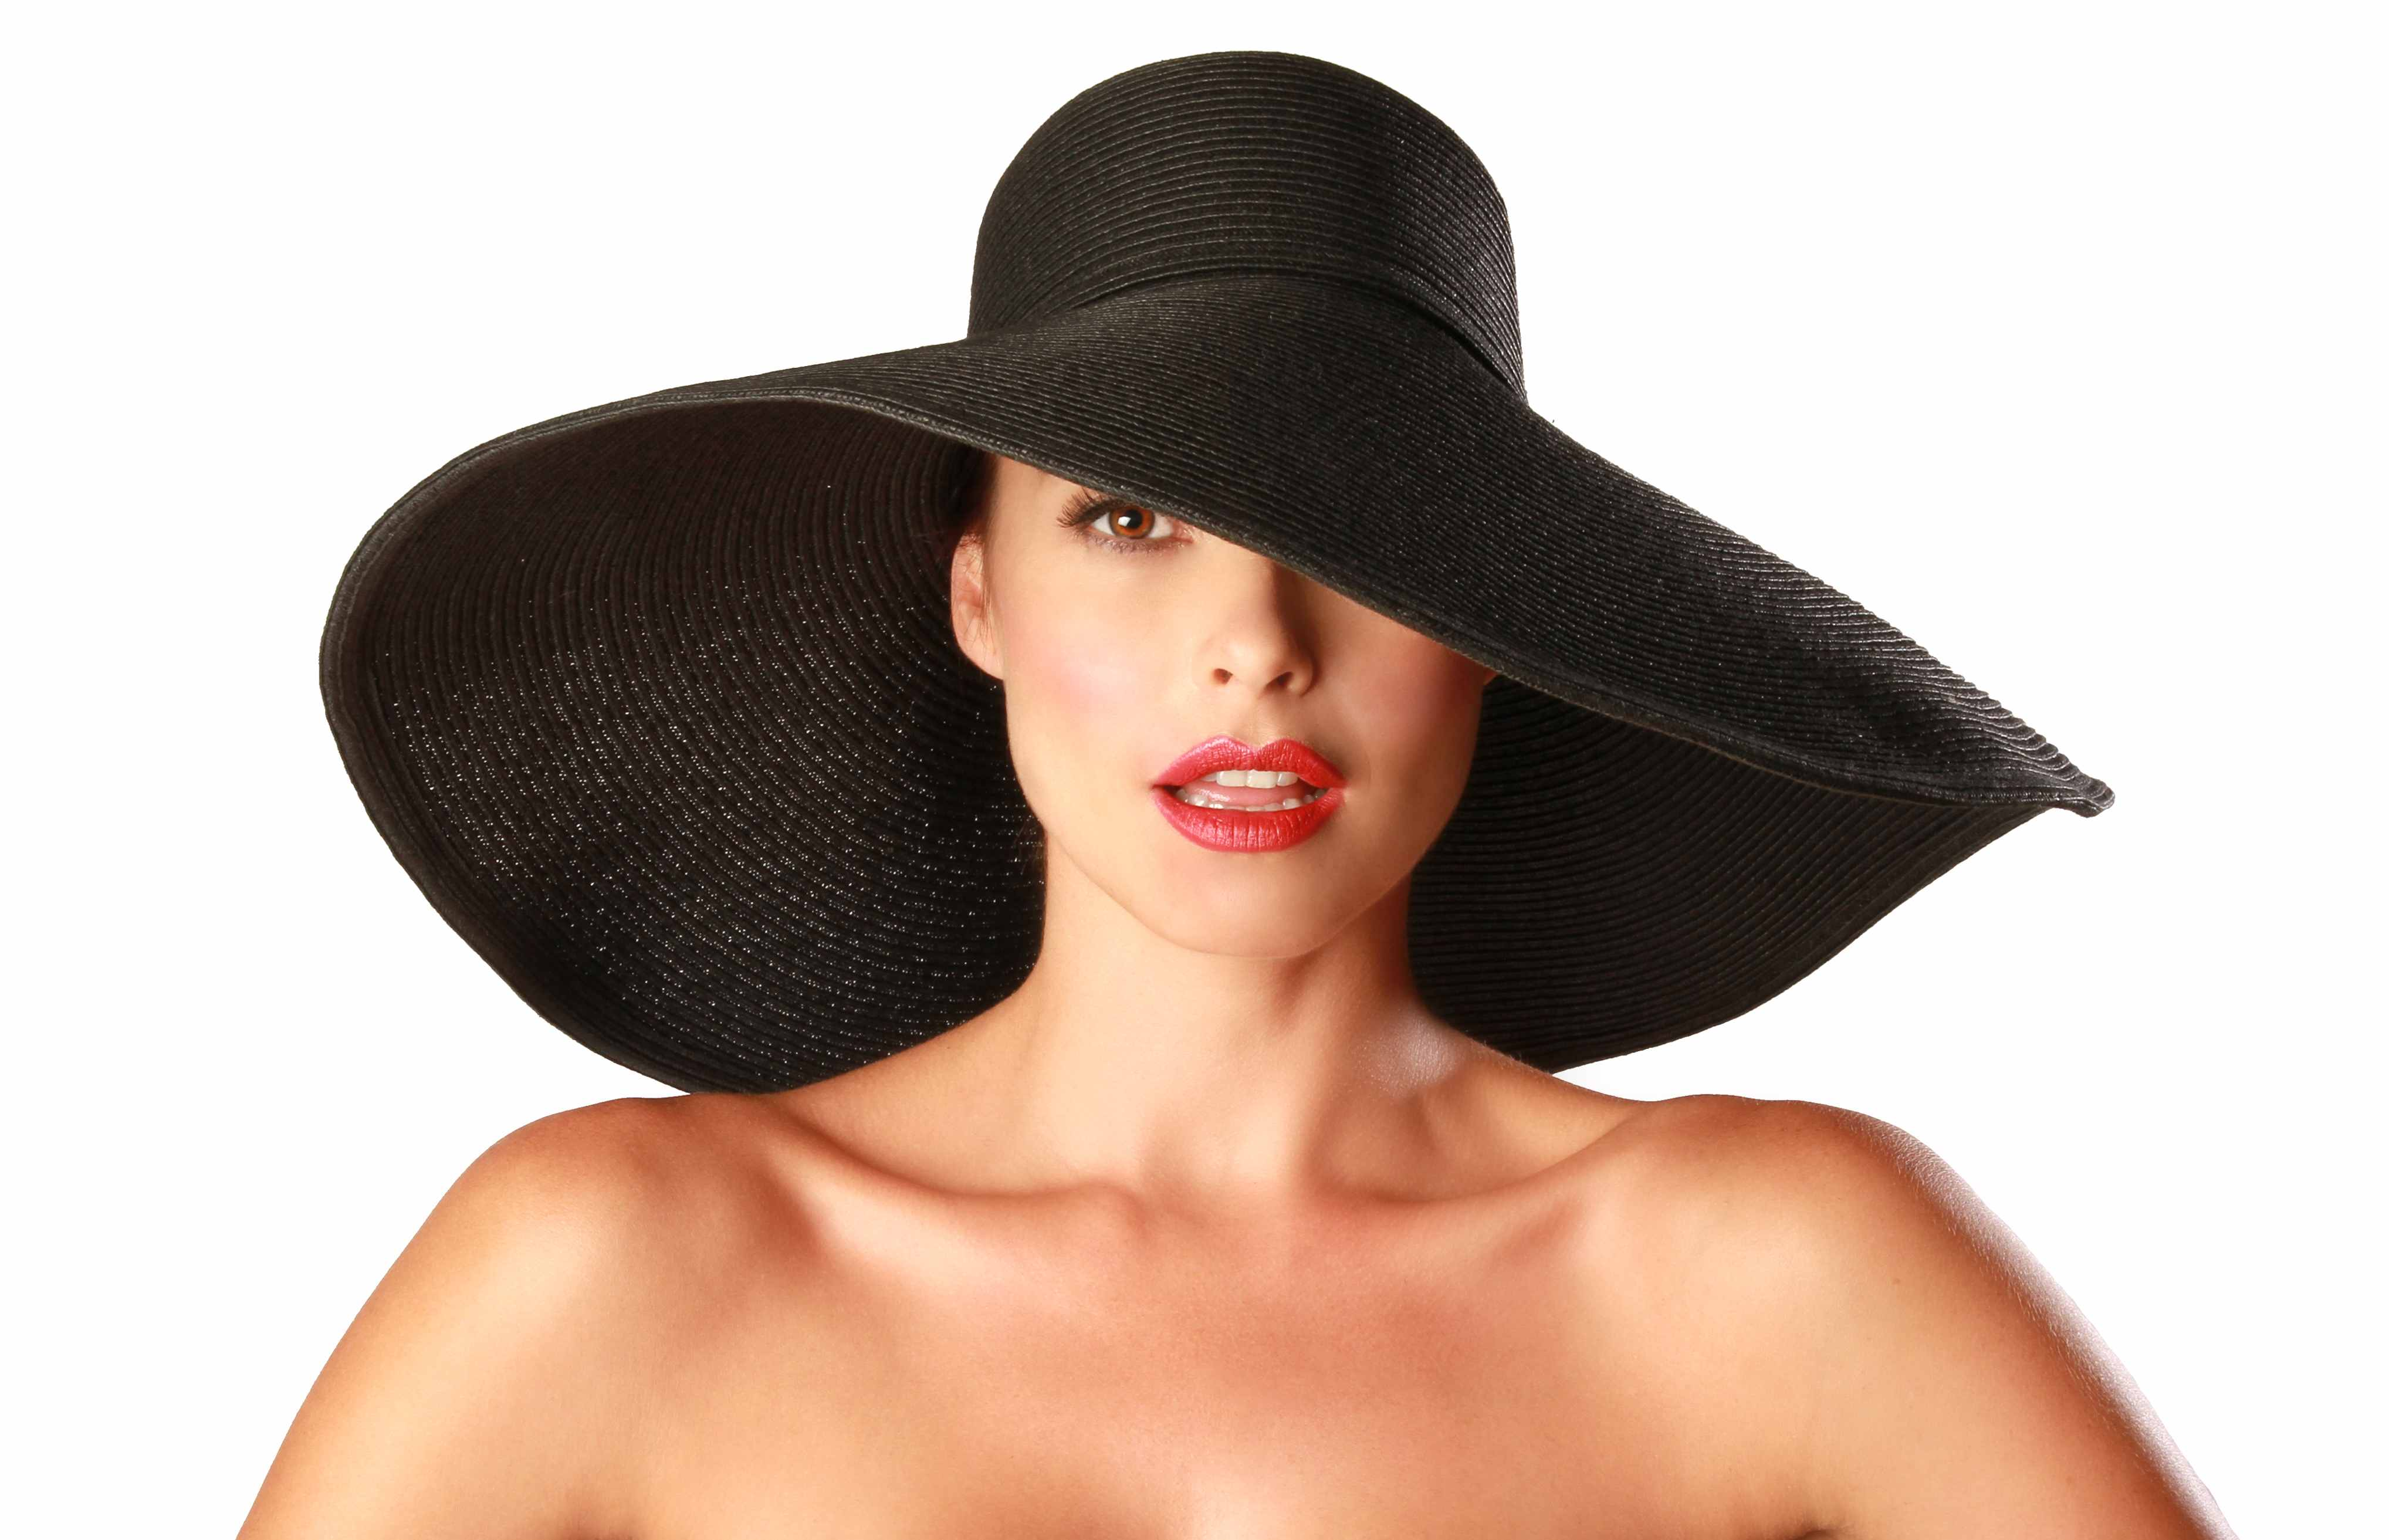 c12f70aad926c Belladonna Sun Hat in BlackWide Brimmed Kentucky Derby Sun Hat. Gottex by Physician  Endorsed ...